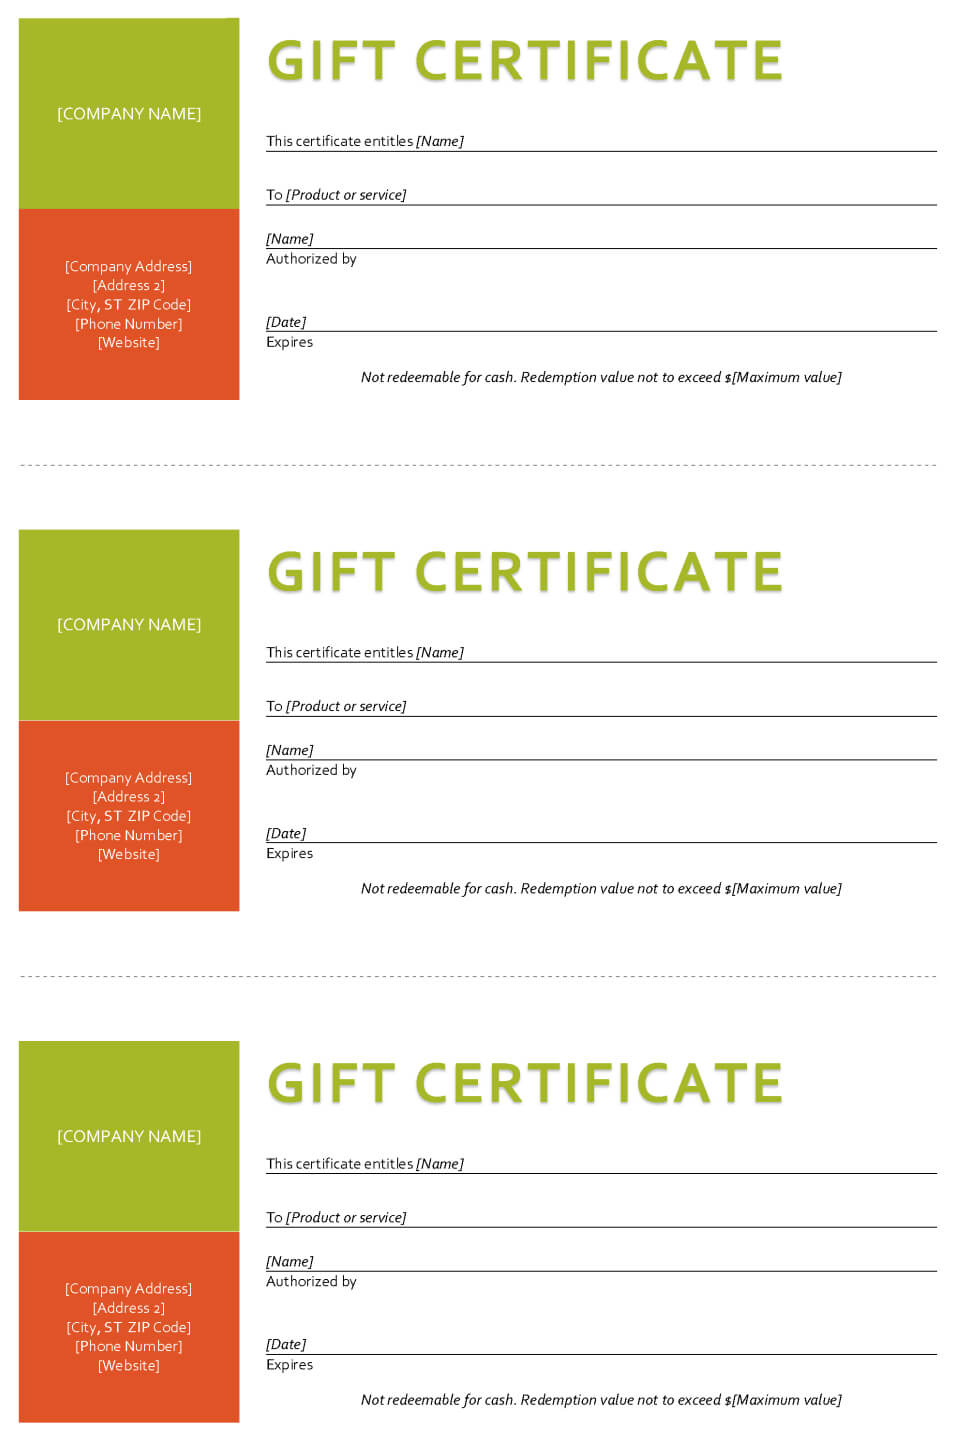 Gift Certificate Template - Sample Gift Certificate For Company Gift Certificate Template